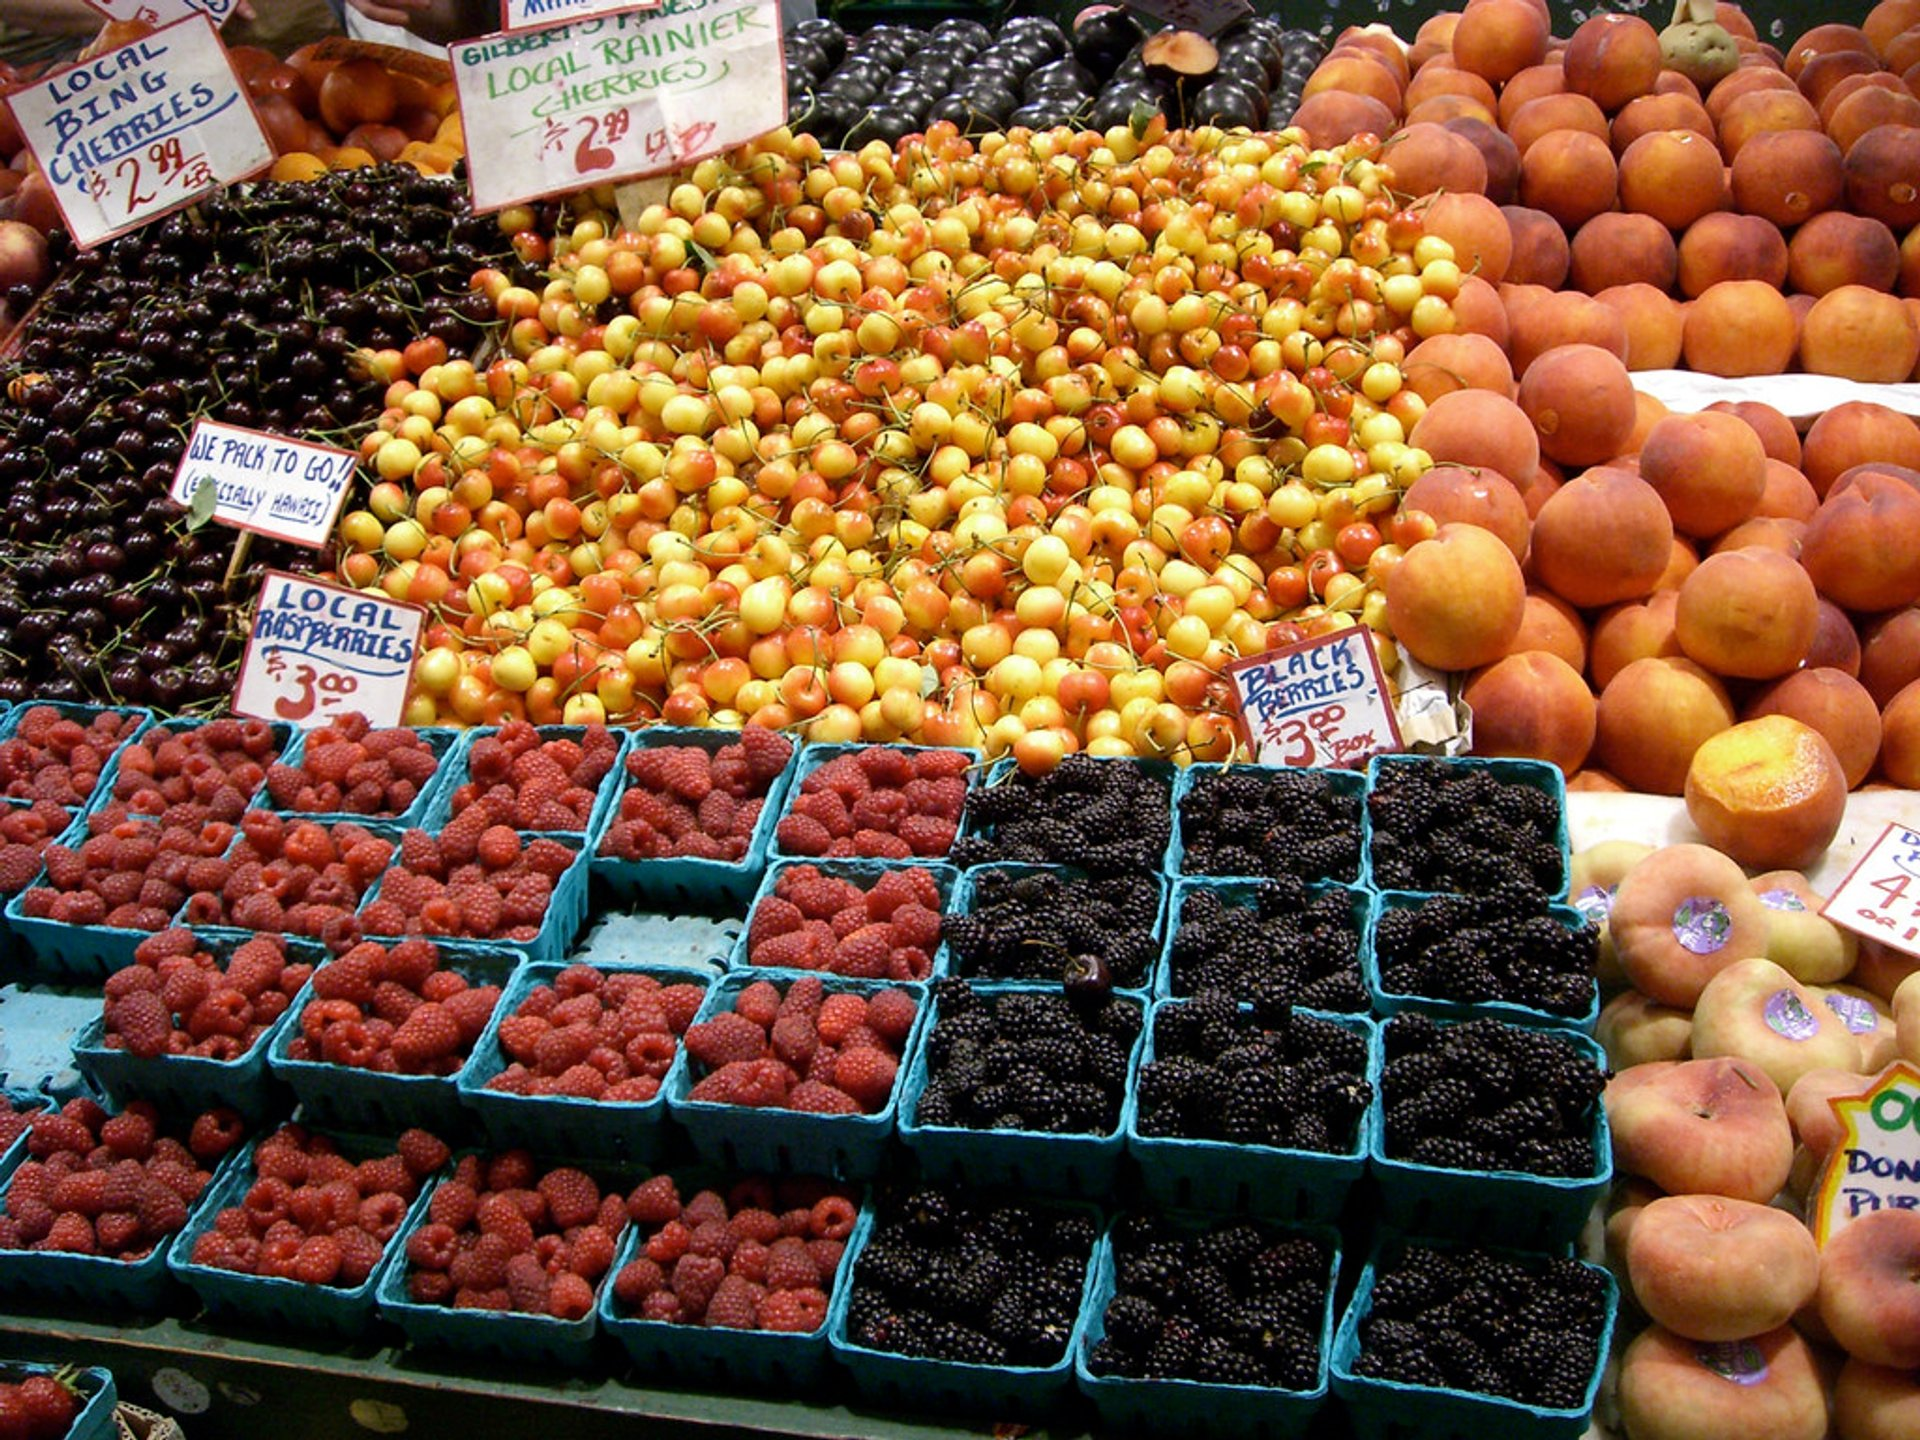 Best time for Pike Place Market in Seattle 2020